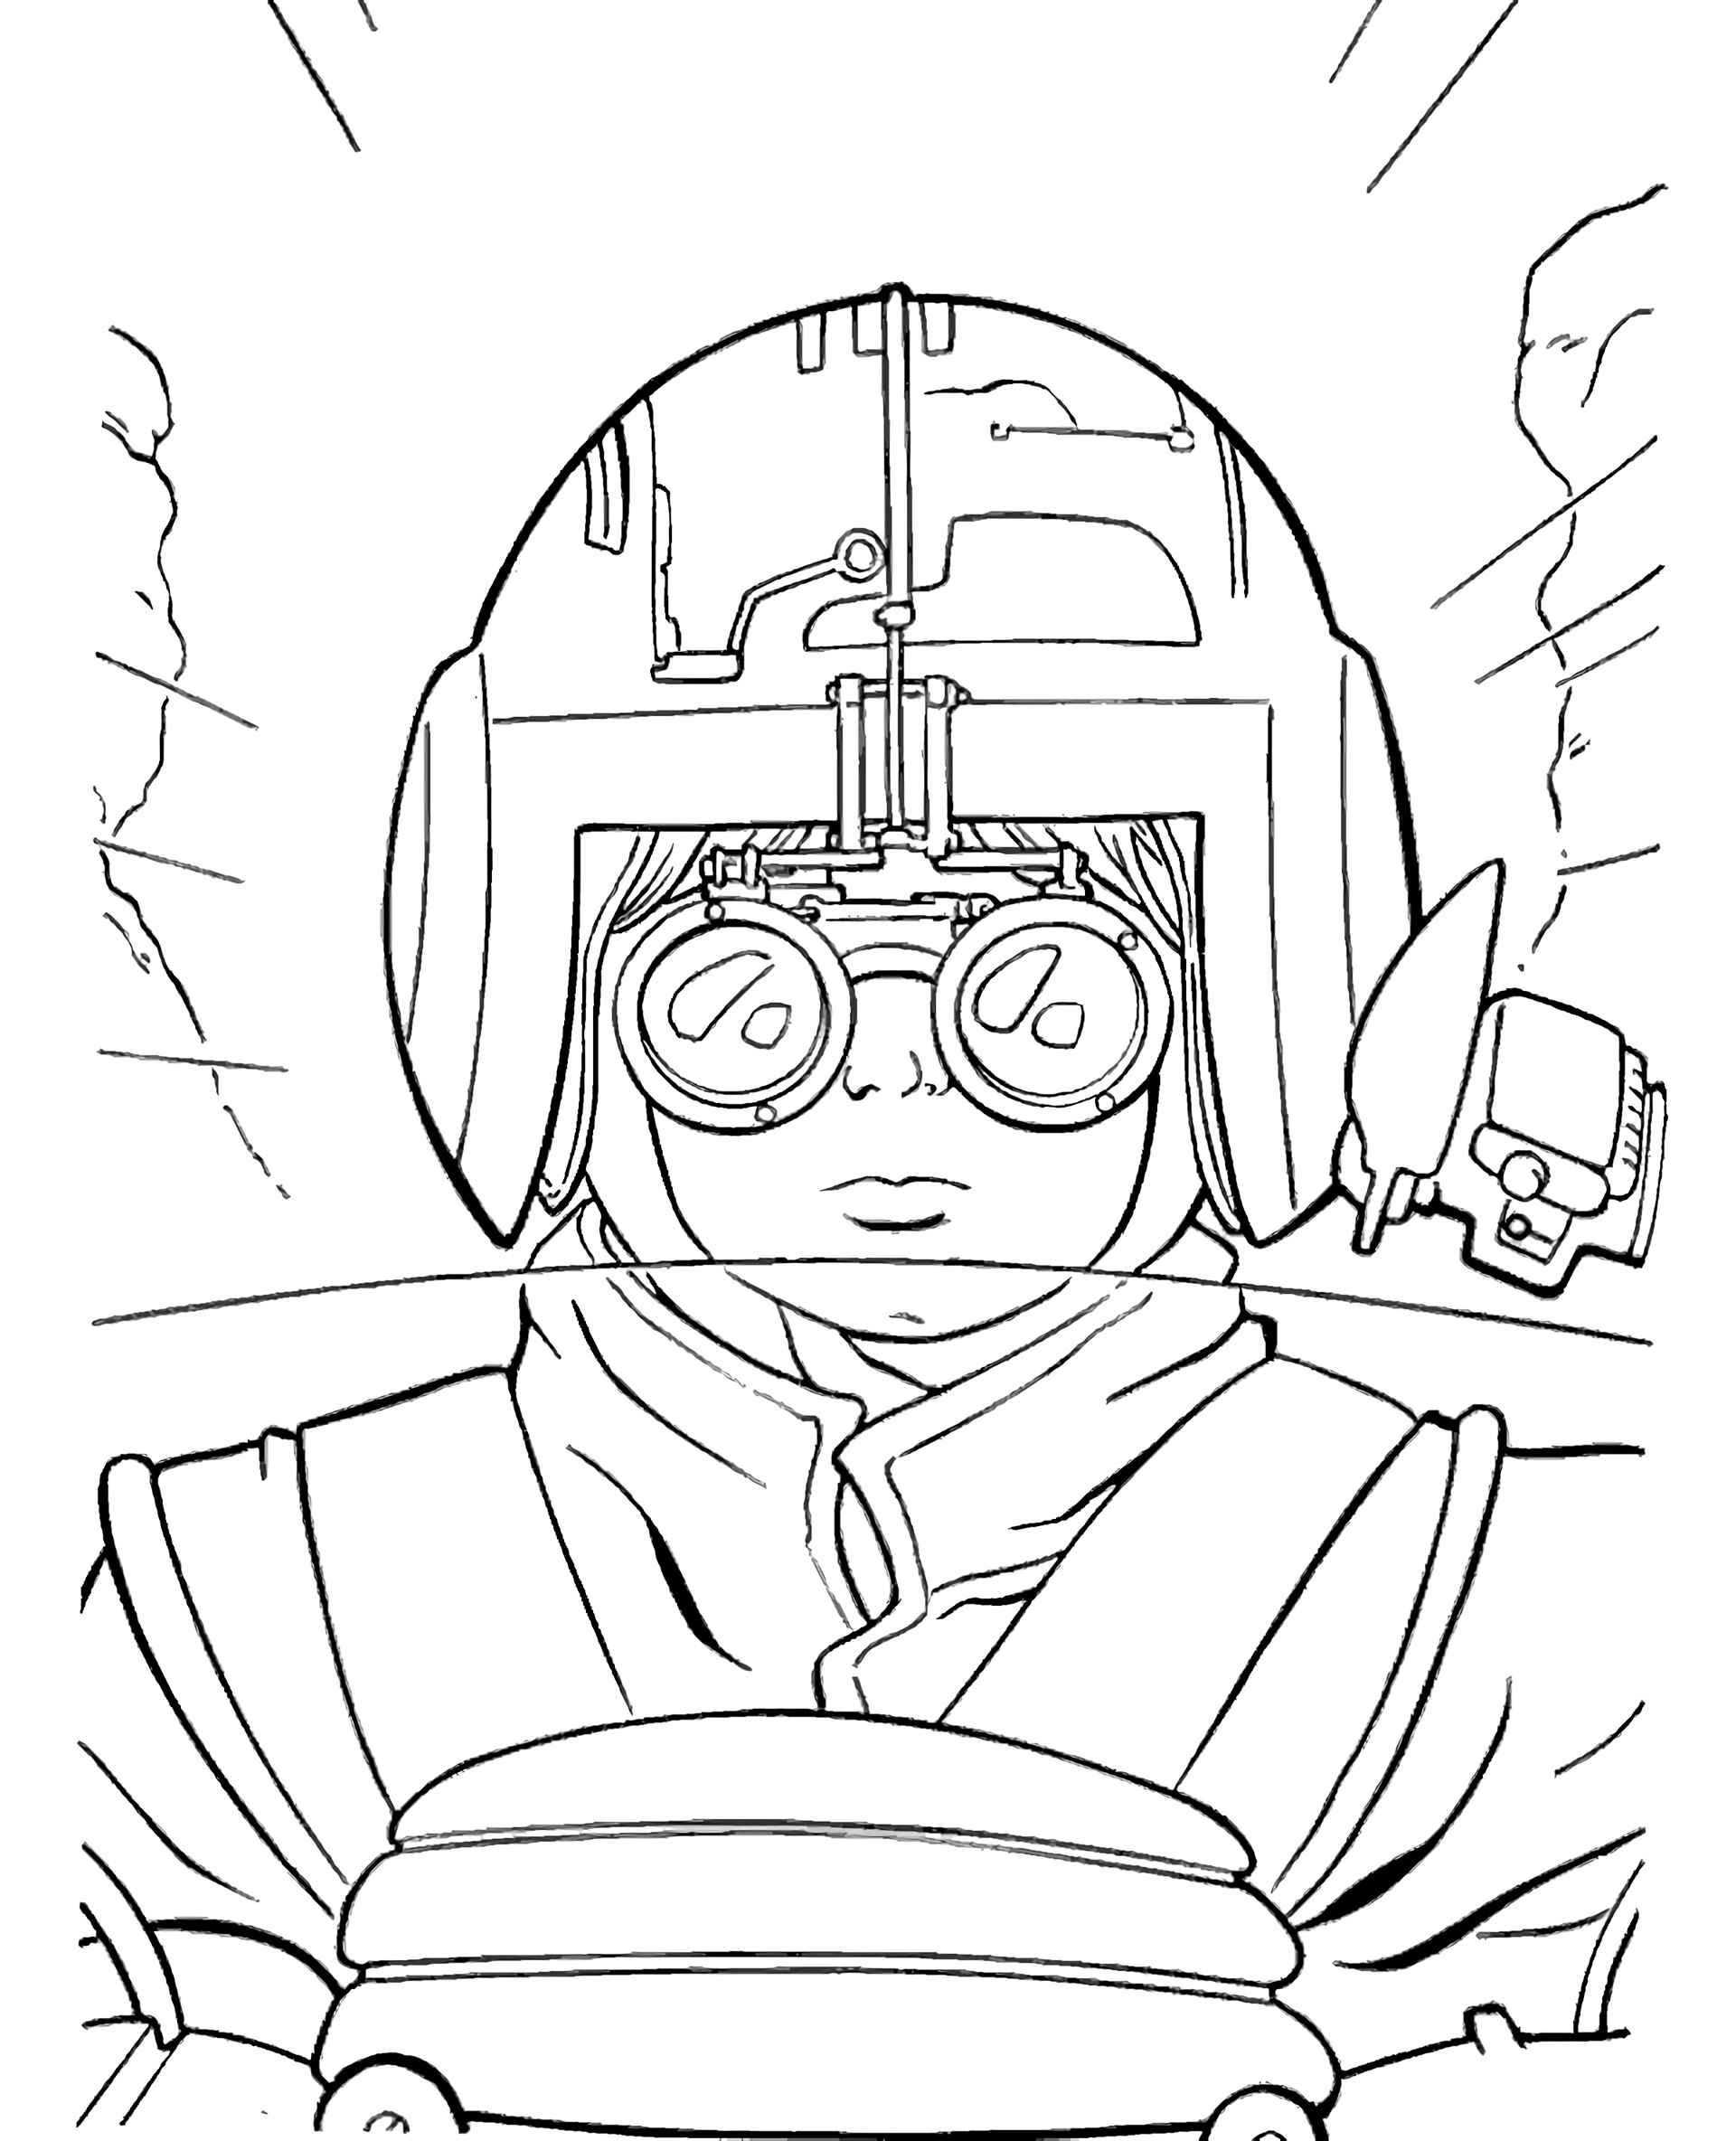 X Wing Pilot From Star Wars Coloring Page